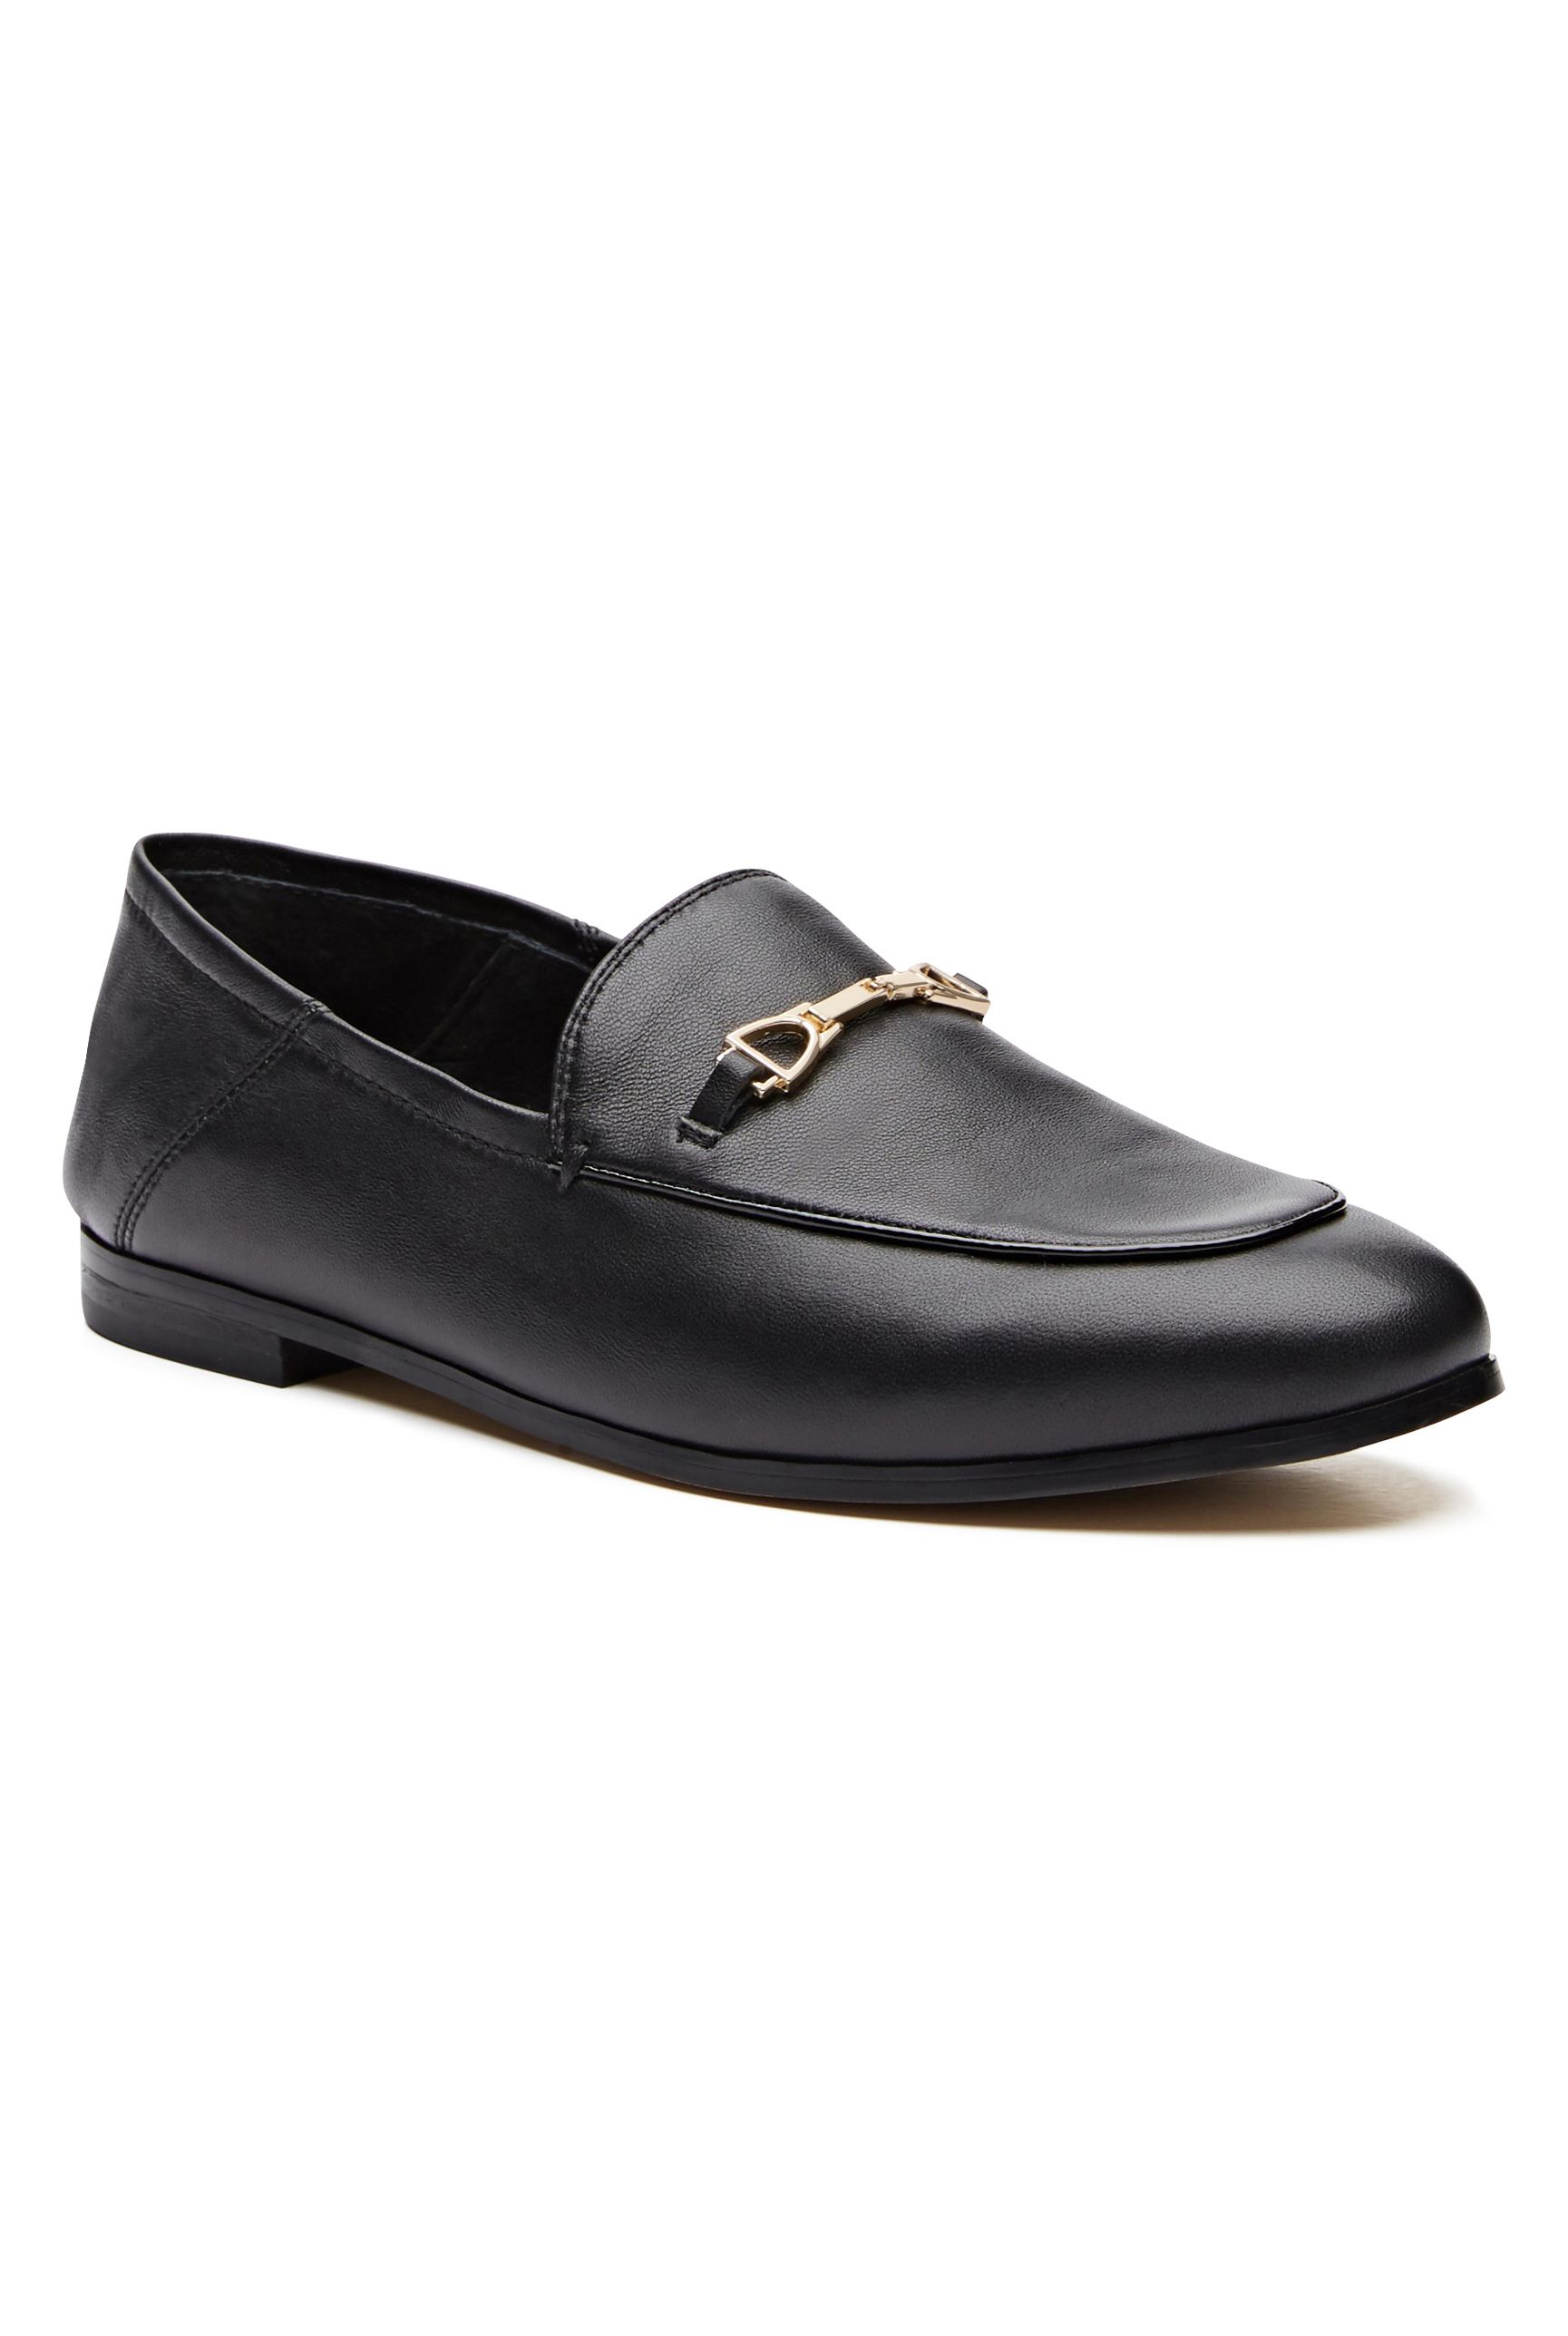 Witchery Lauren Loafer, RRP $